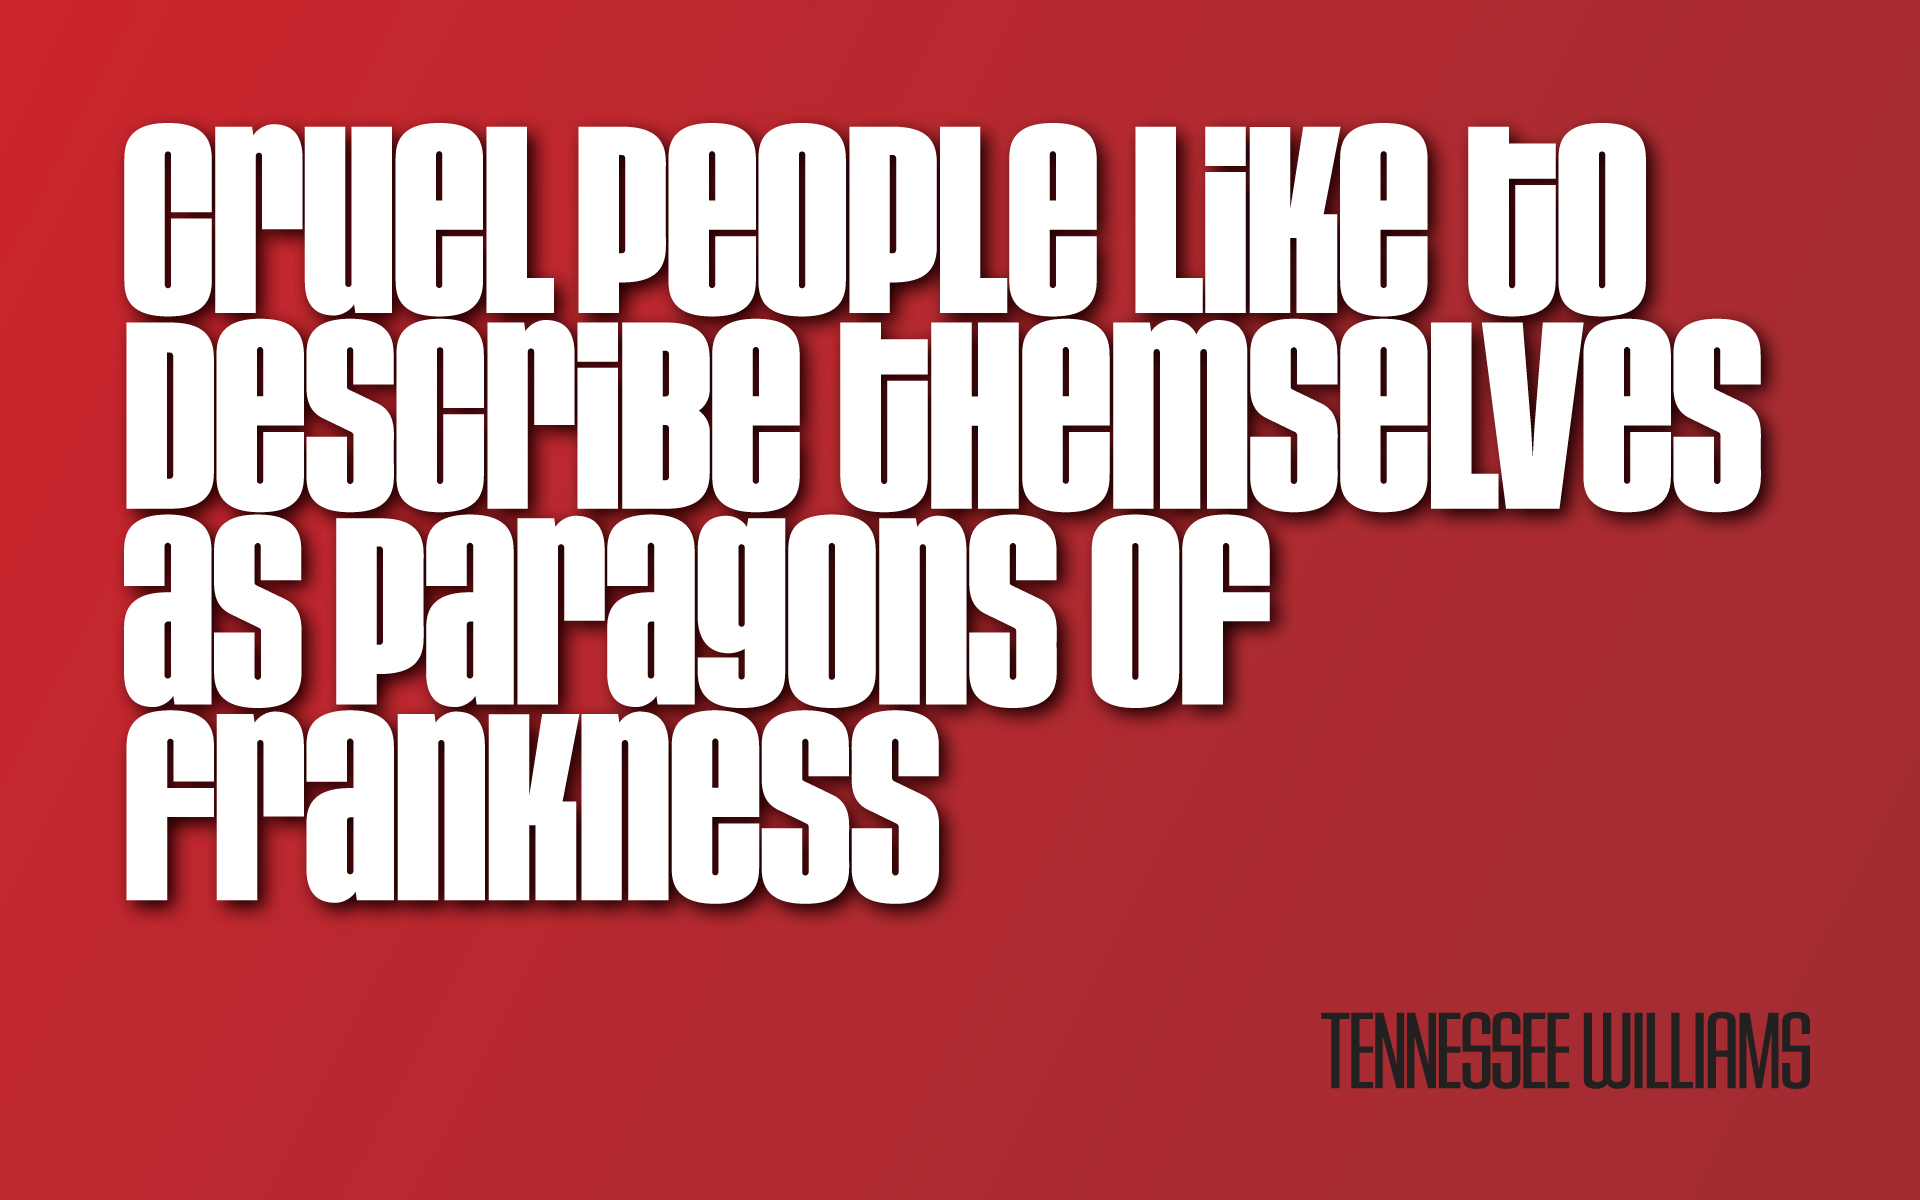 Cruel people like to describe themselves as paragons of frankness. — Tennessee Williams [1920×1200]